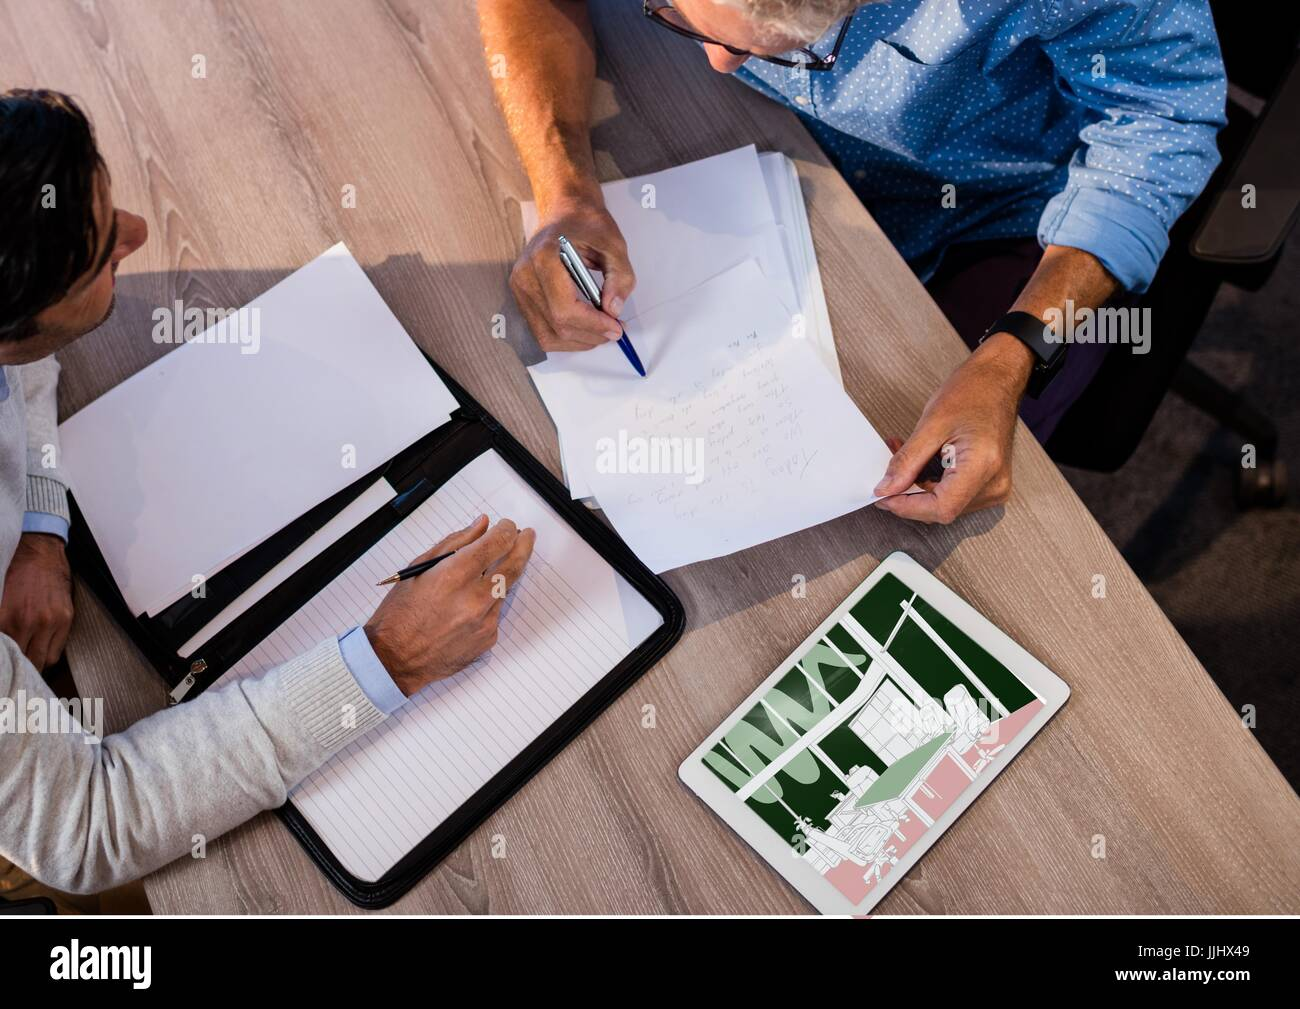 top view of a desk with two businessmen working. Tablet on the desk with new office meeting room blu - Stock Image